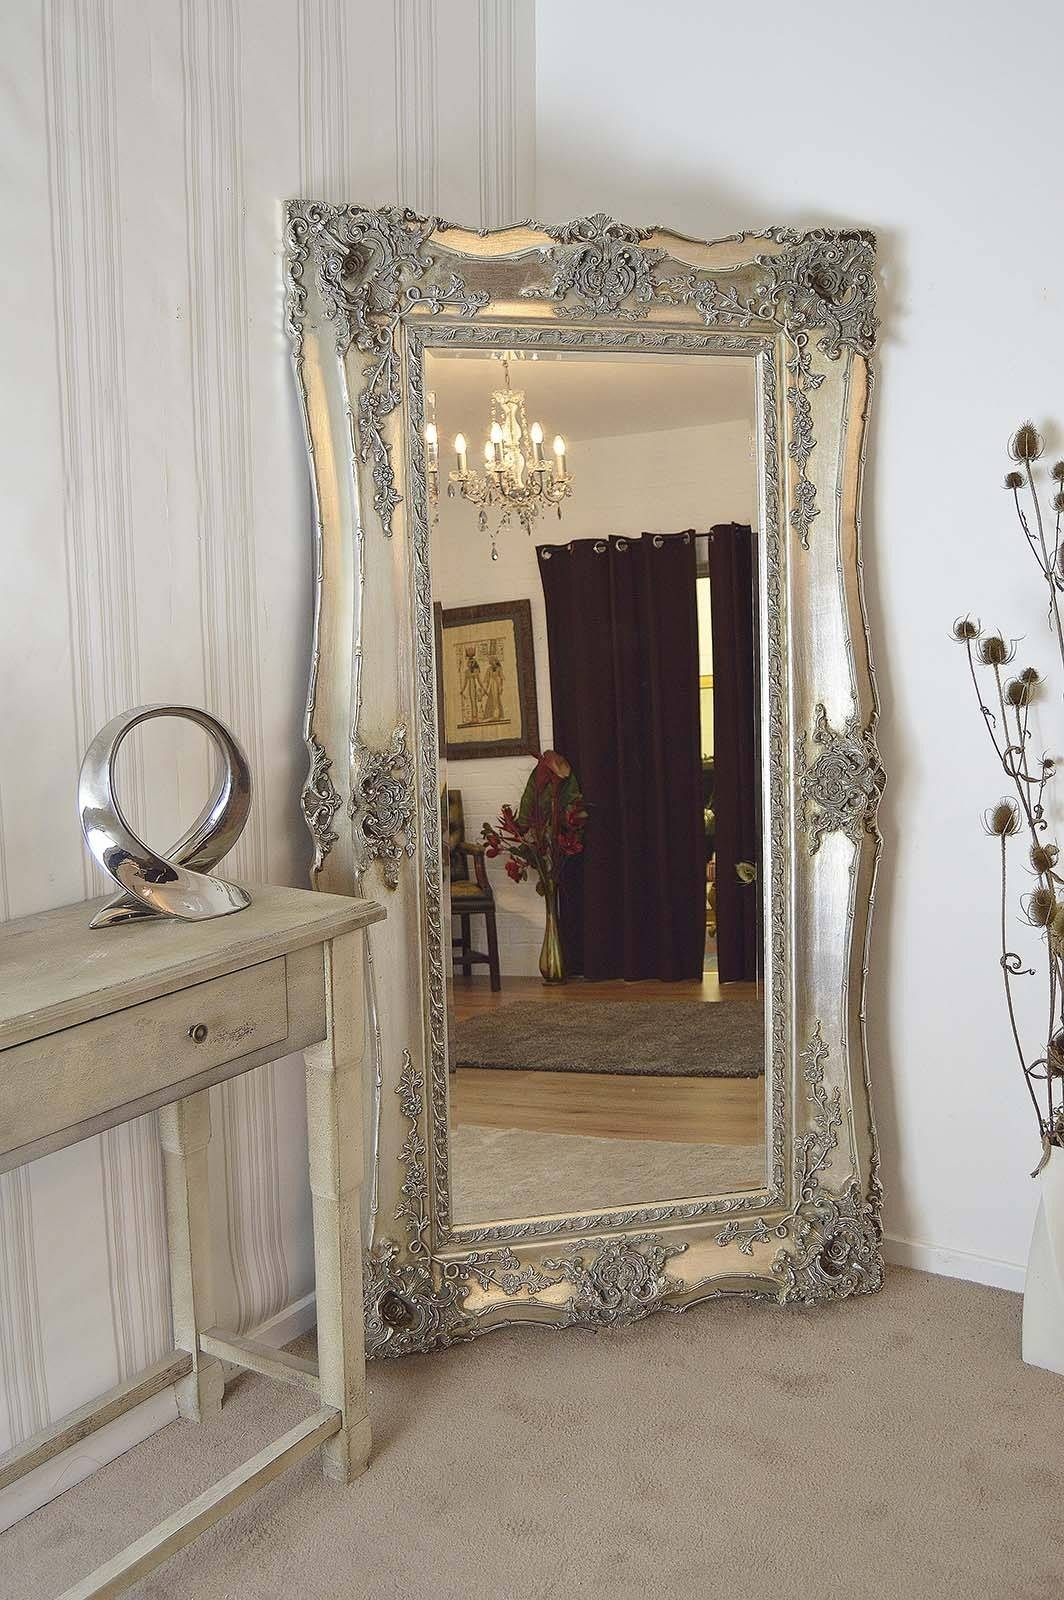 Extra Large Mirrors For Walls 70 Cool Ideas For Extra Large Wall with regard to Large Antiqued Mirrors (Image 8 of 25)